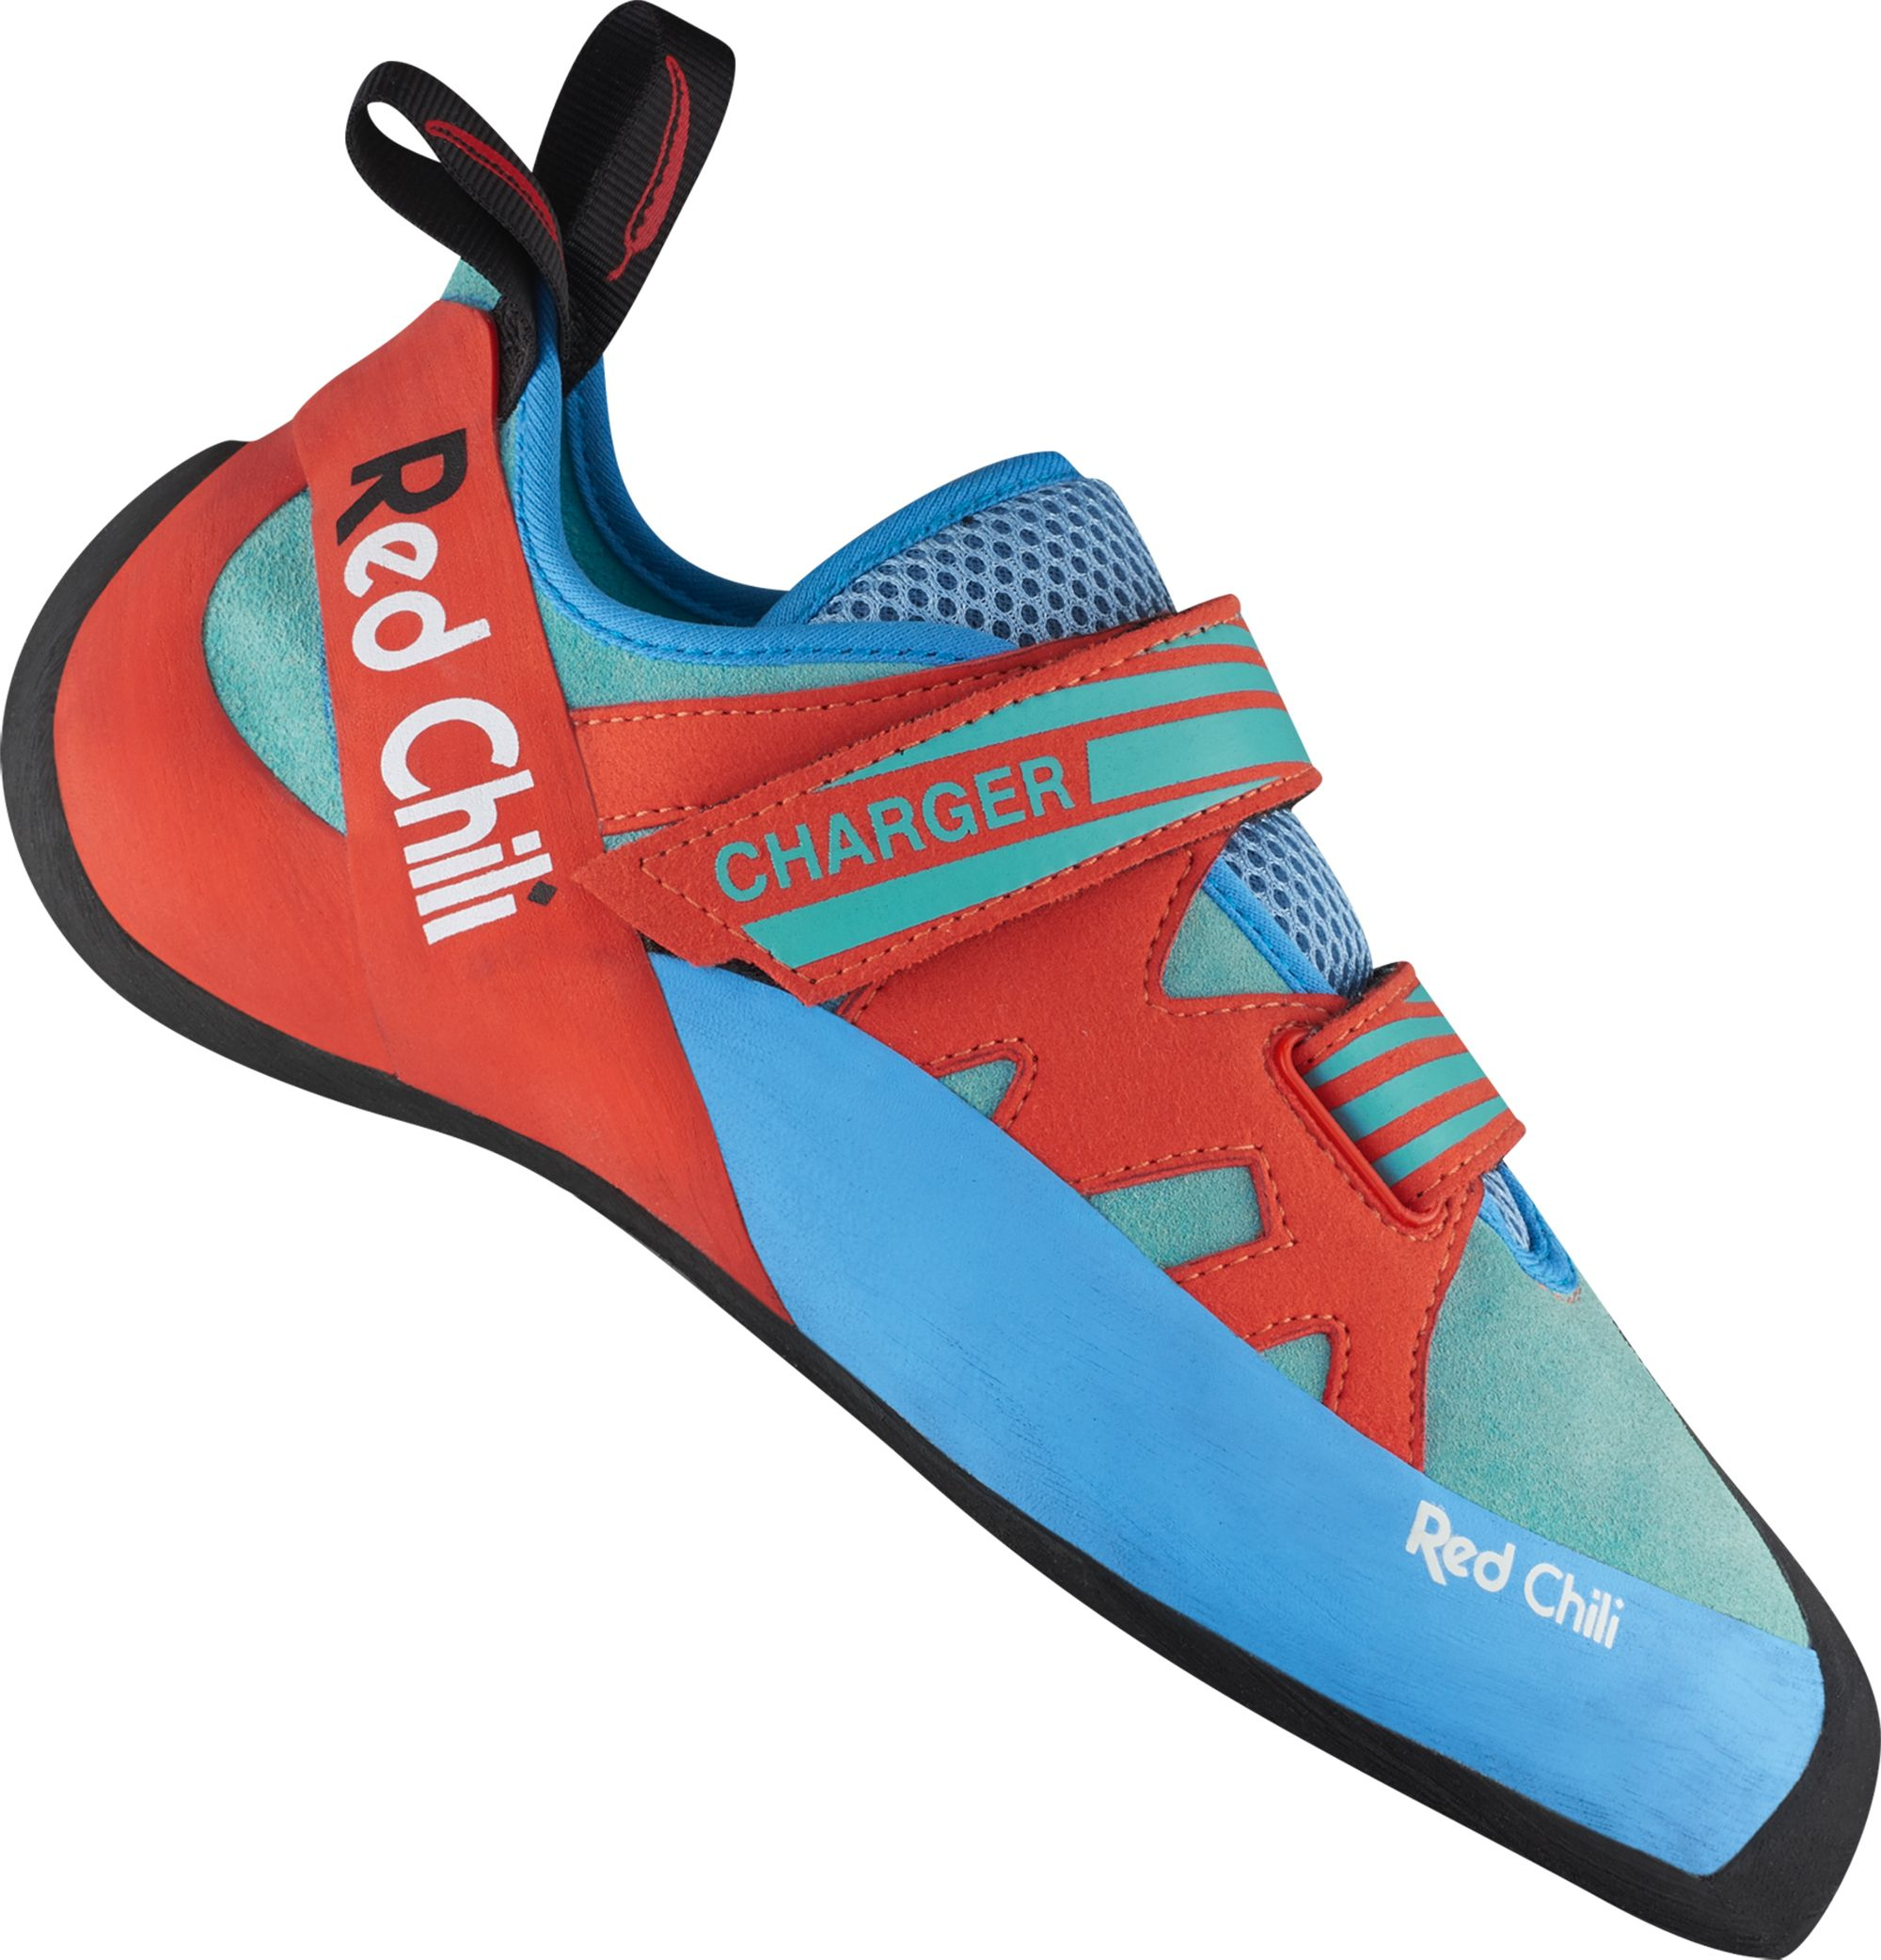 Red Chili 'Voltage LV' Kletterschuhe orangerot YUCdTj